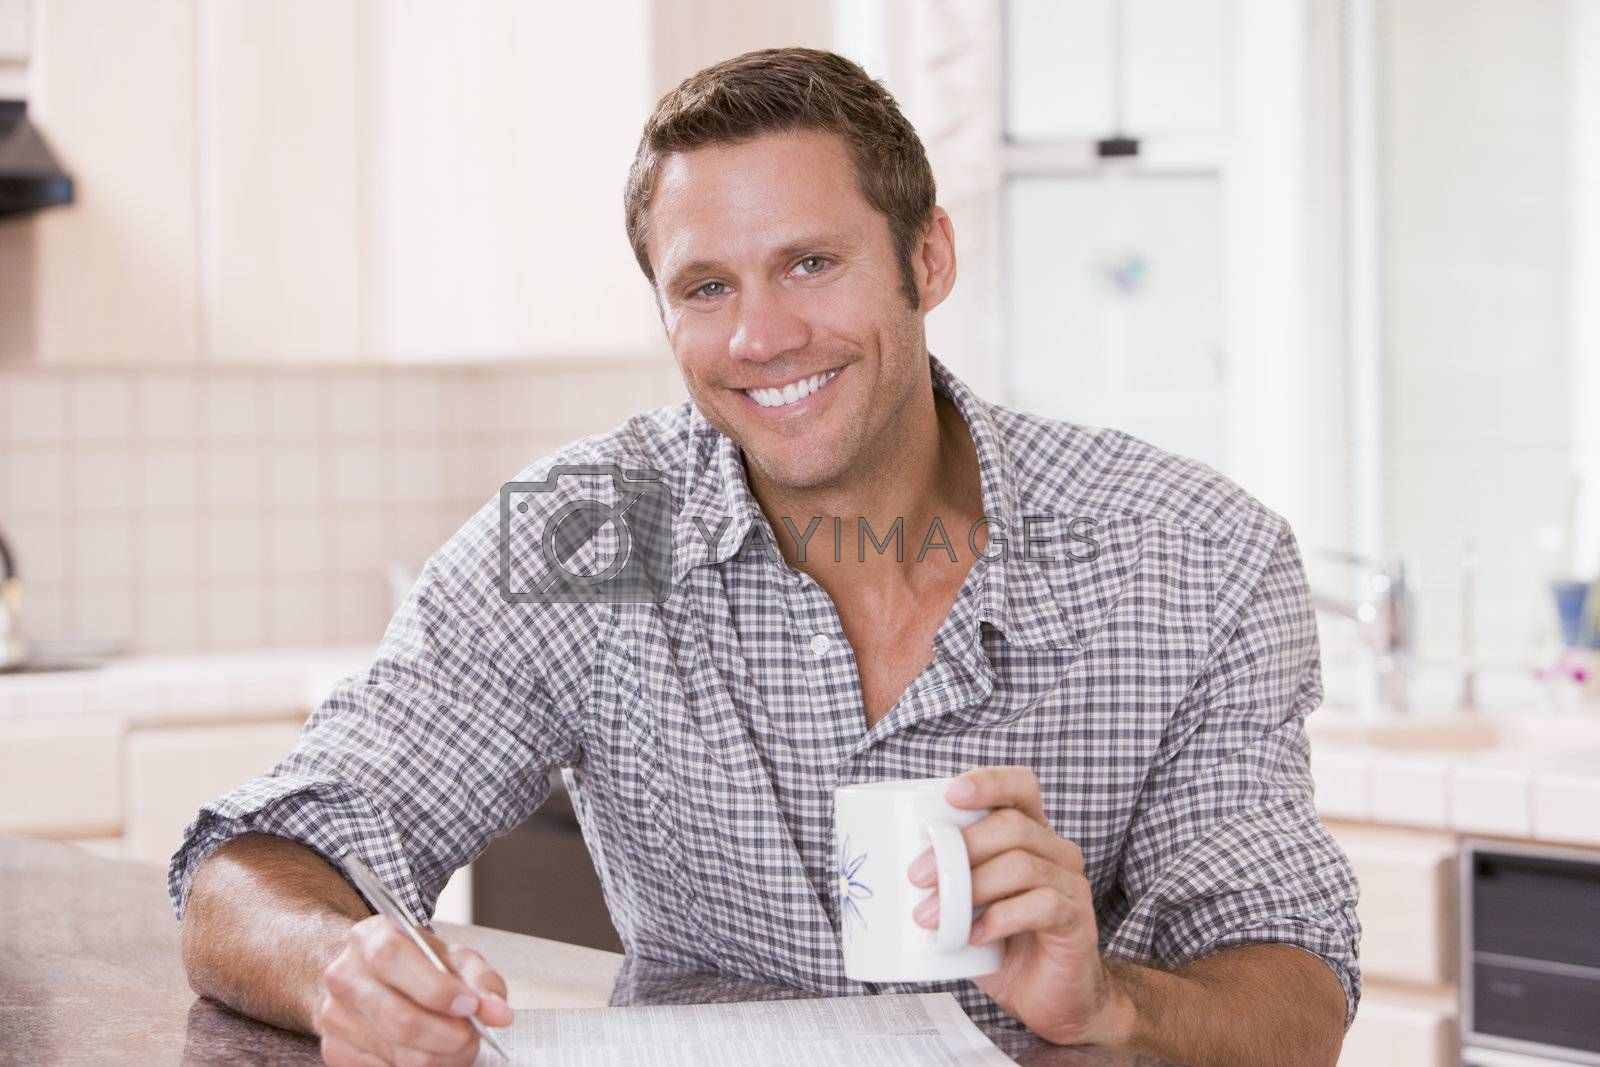 Man in kitchen reading newspaper and smiling by MonkeyBusiness